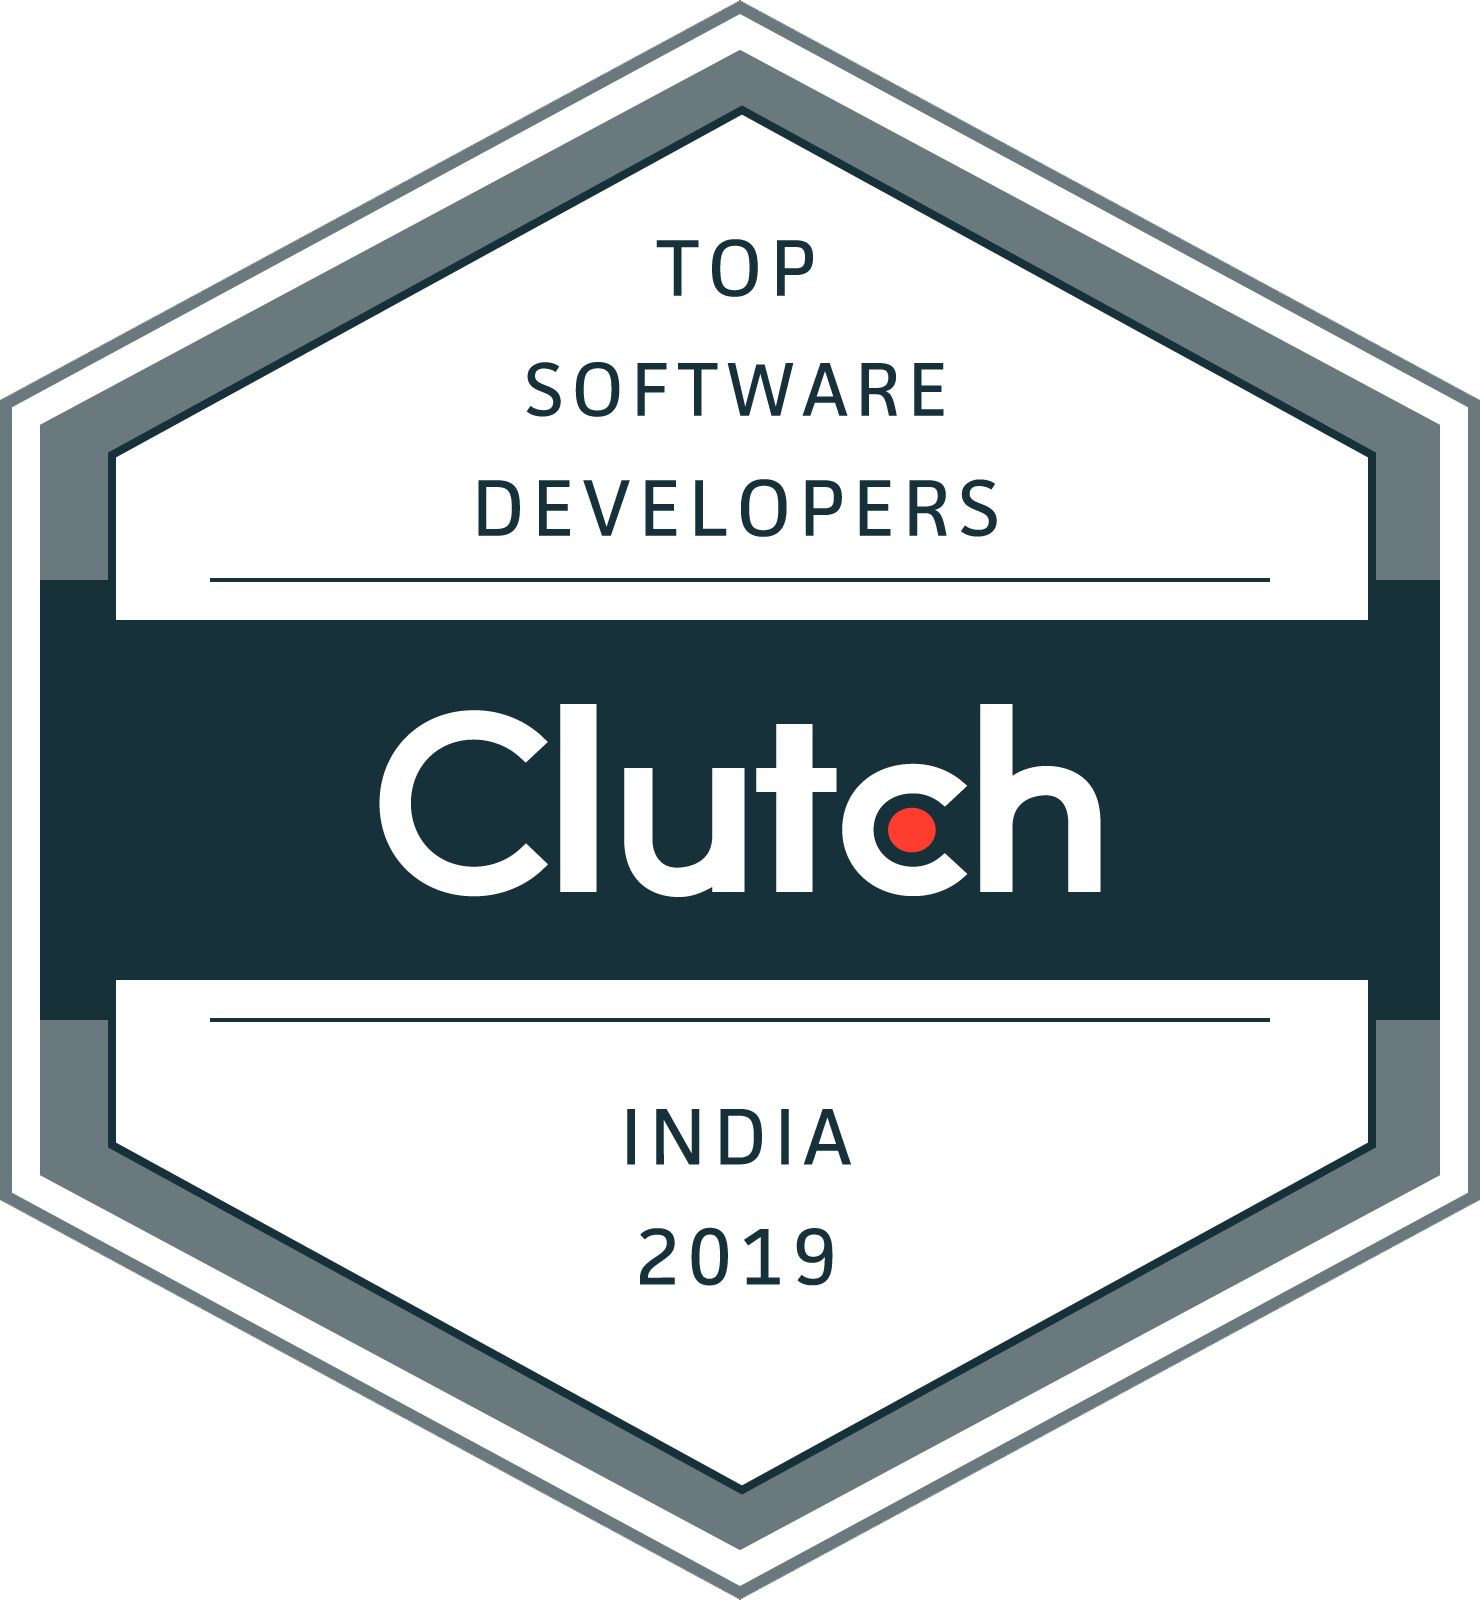 Clutch - Top Software Developers India